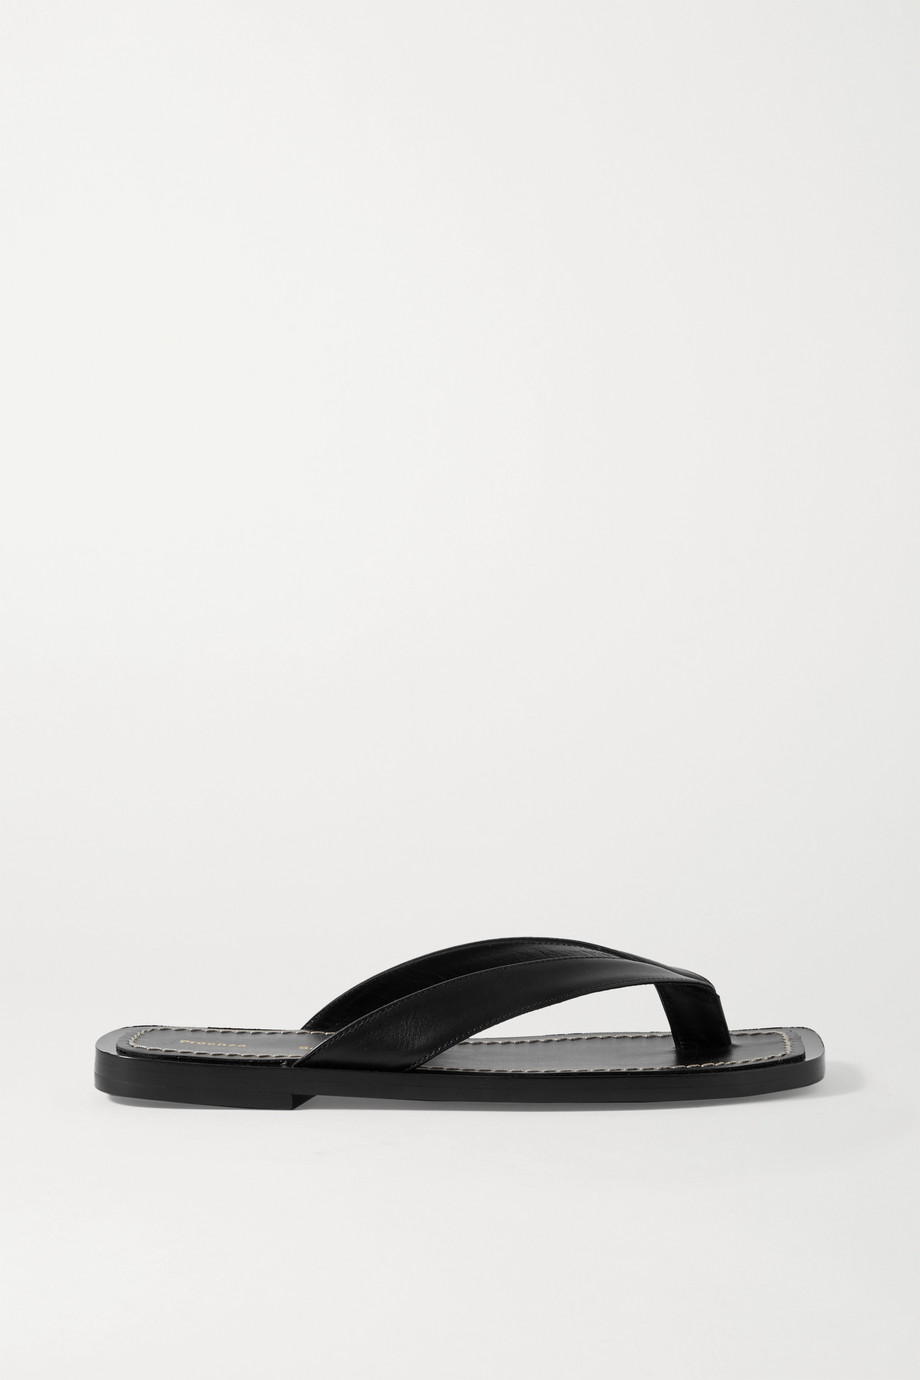 Proenza Schouler Leather flip flops